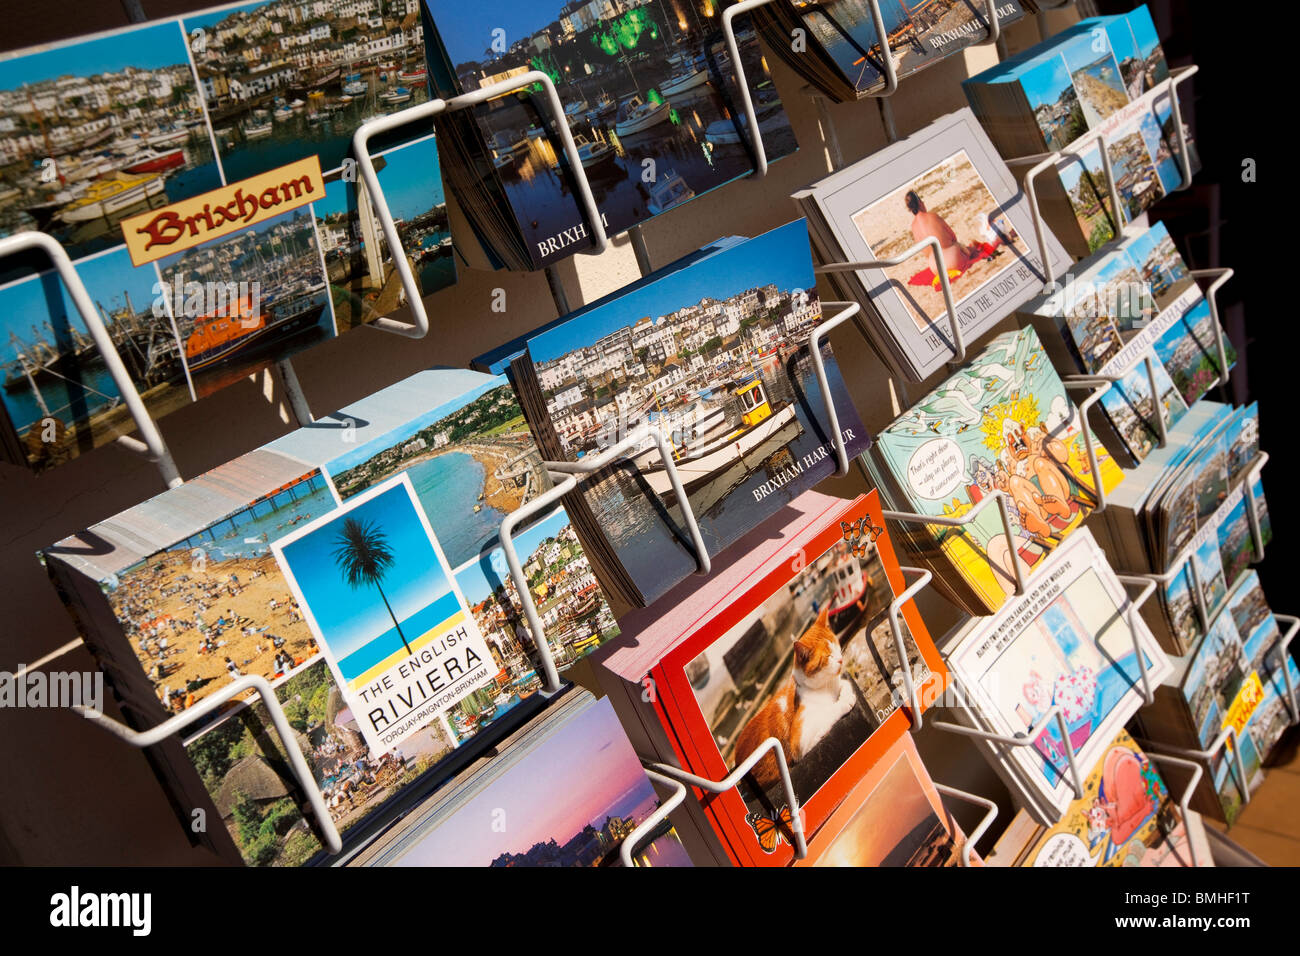 UK, England, Devon, Brixham colourful picture postcards of local views in rack for sale - Stock Image